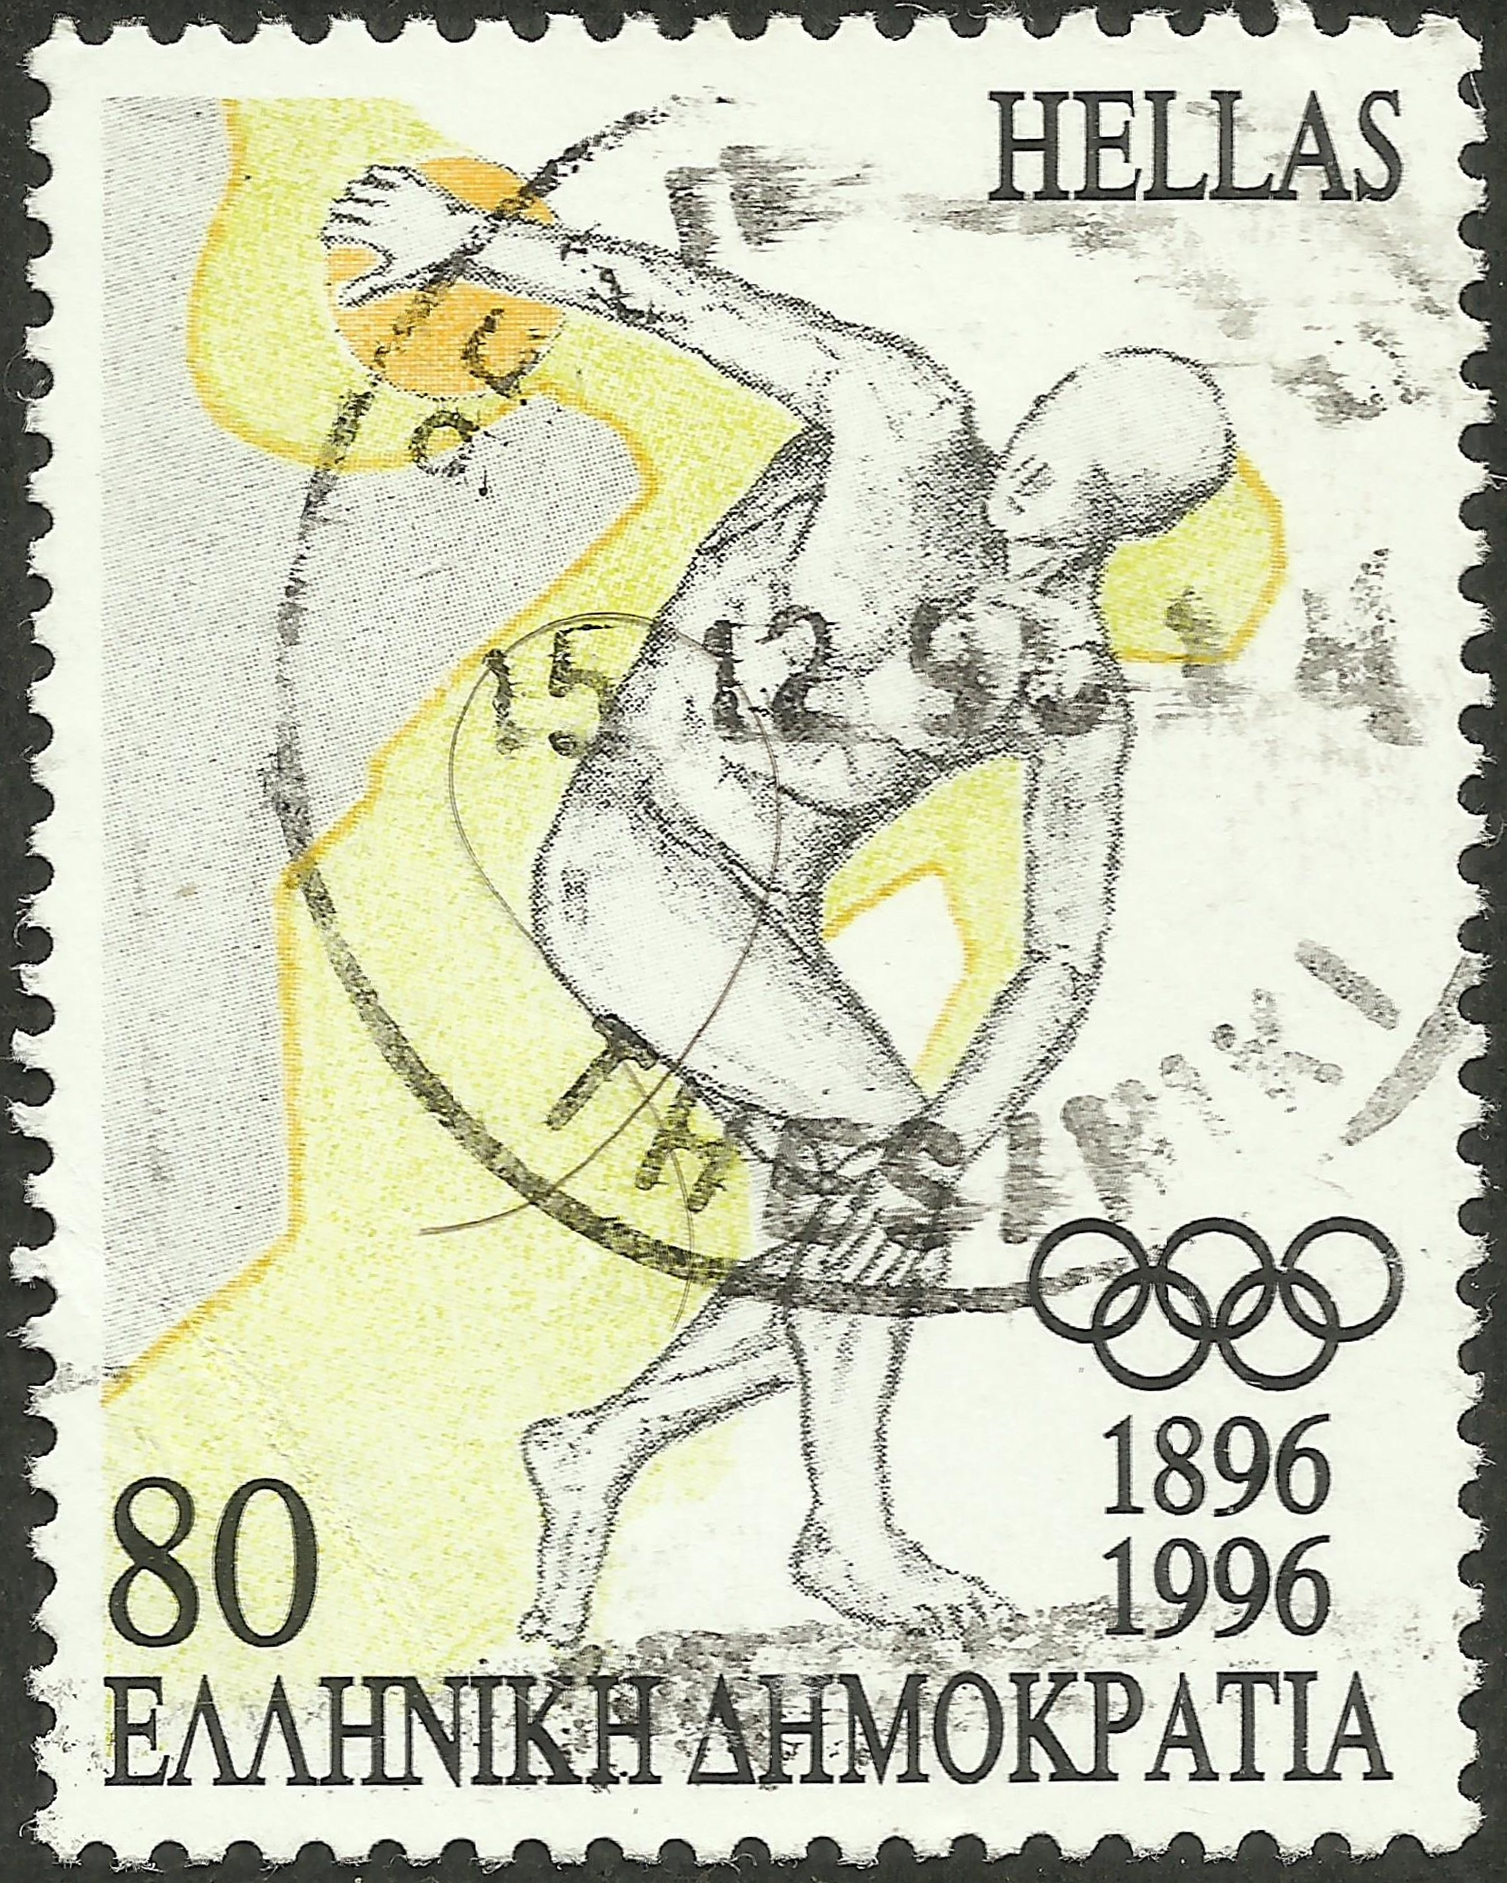 Greece - Scott #1838 (1996)